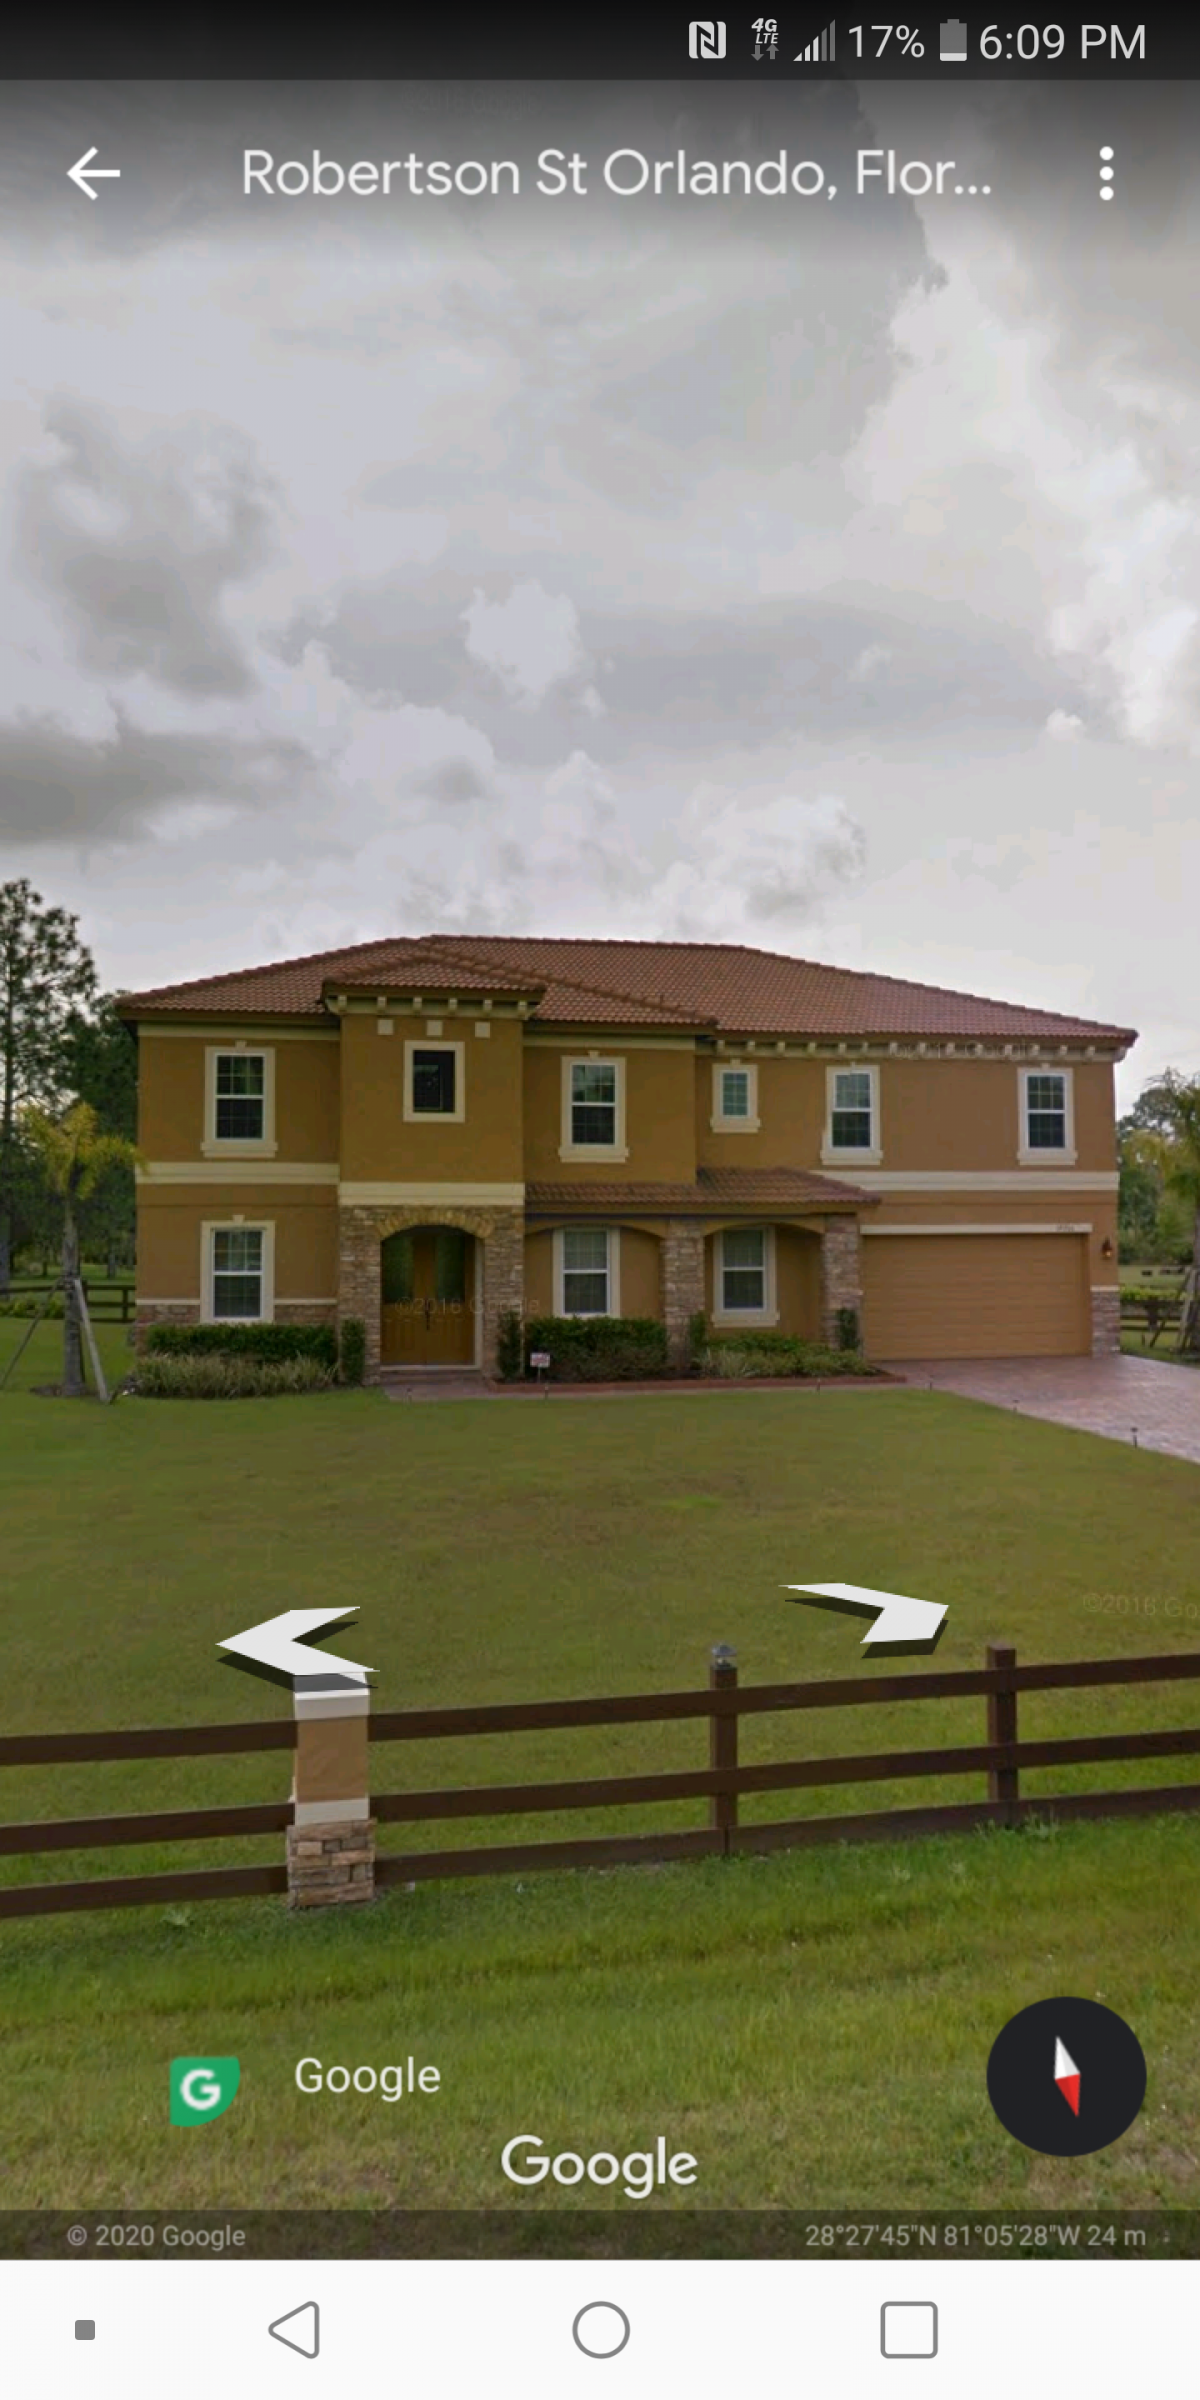 Second story stucco overhangs first story?-screenshot_20200102-180943_1578006690410.png